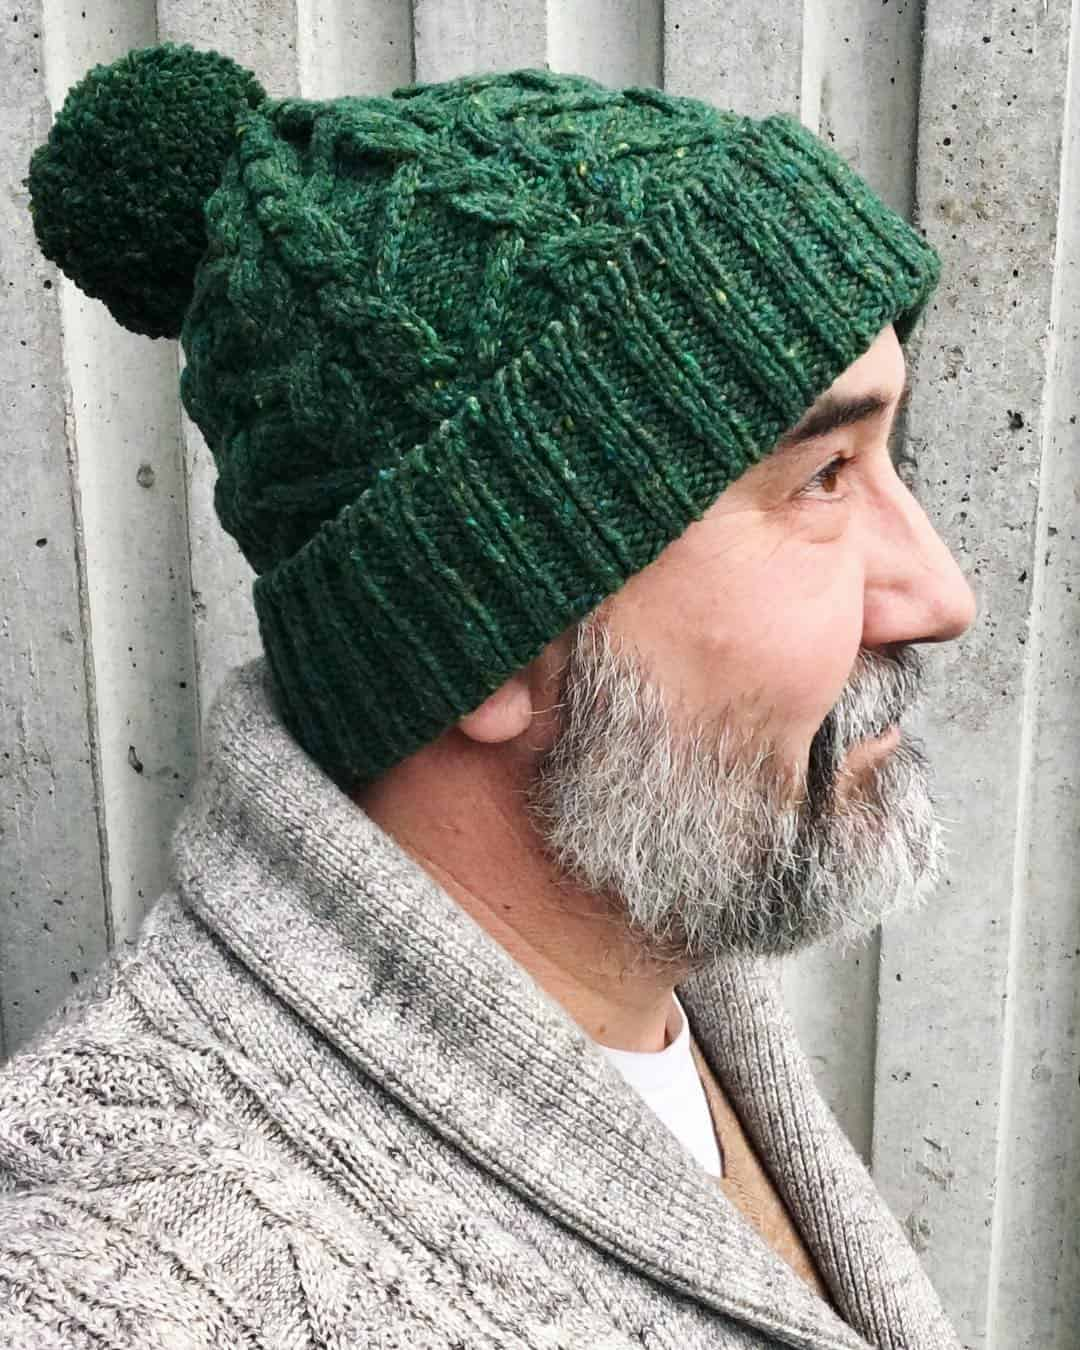 Men Hats 2021: Fashion Trends and Ideas for Men Hats